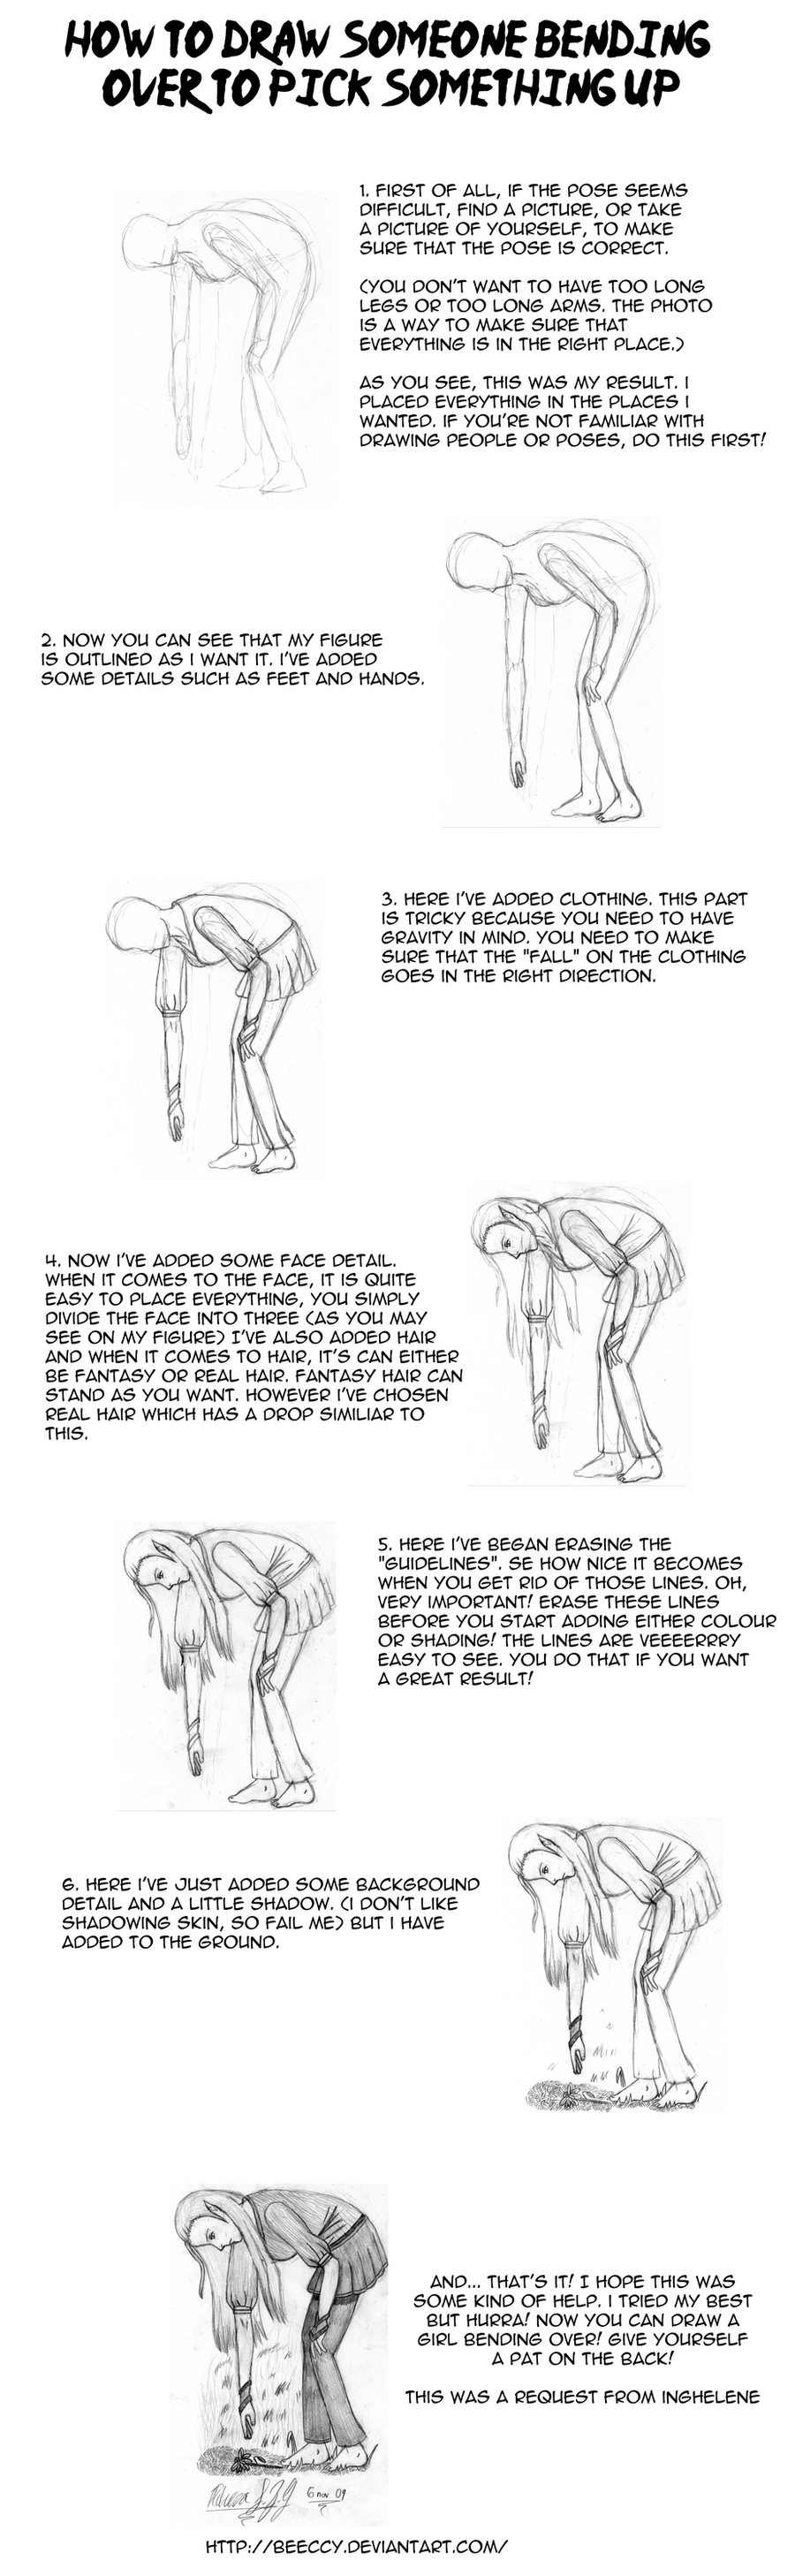 How To Draw Someone Bend Over By Beeccy